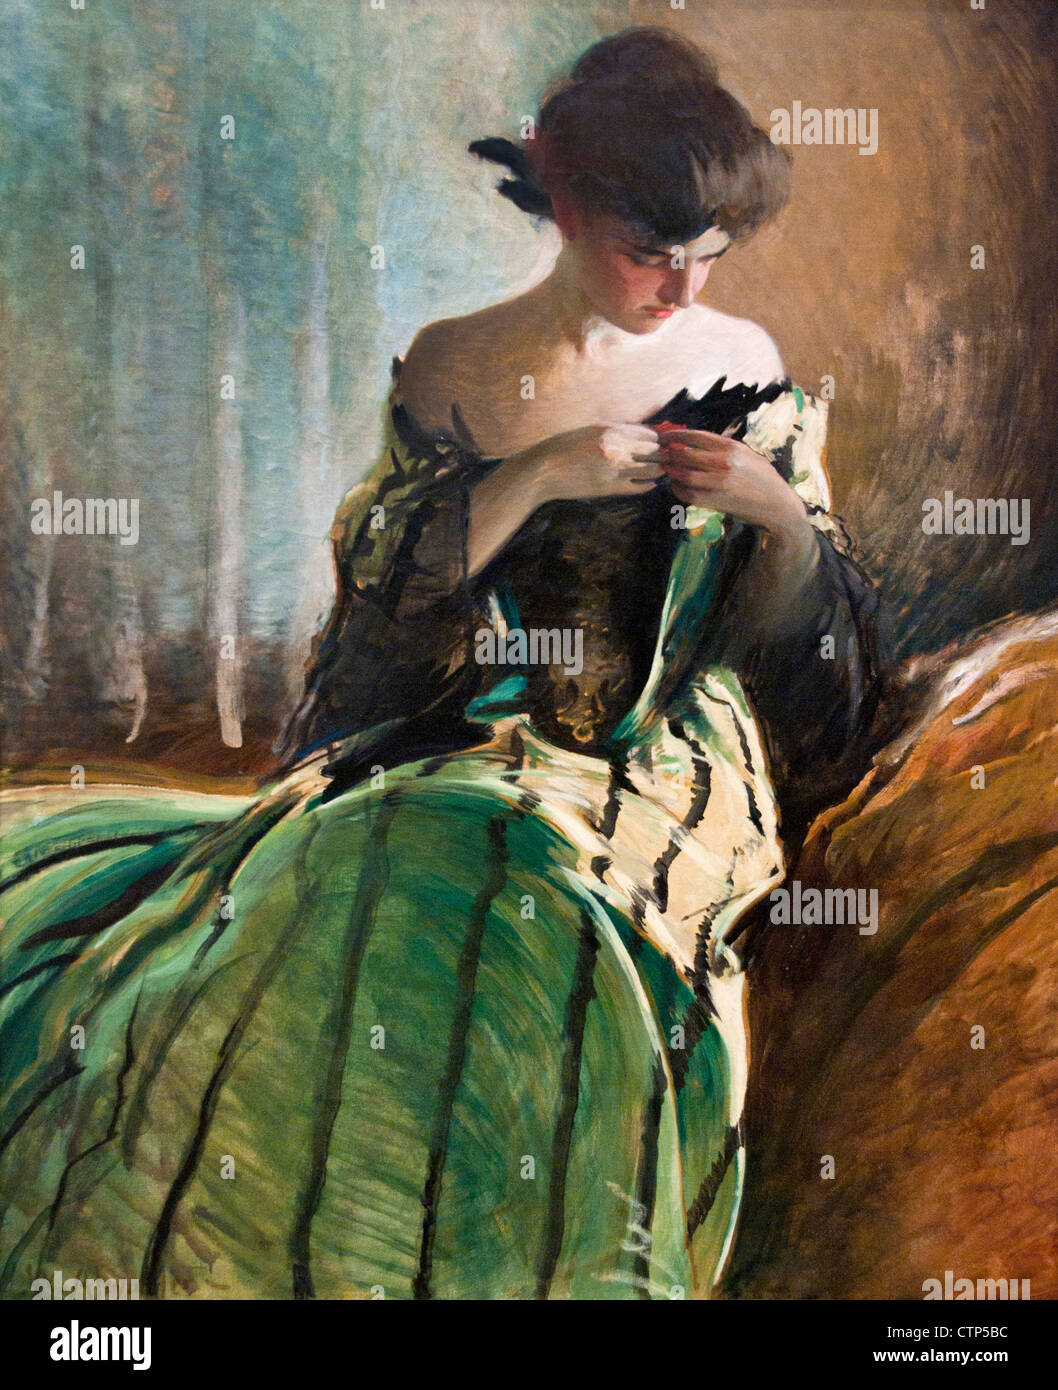 Study in Black and Green 1906 John White Alexander American United States of America - Stock Image